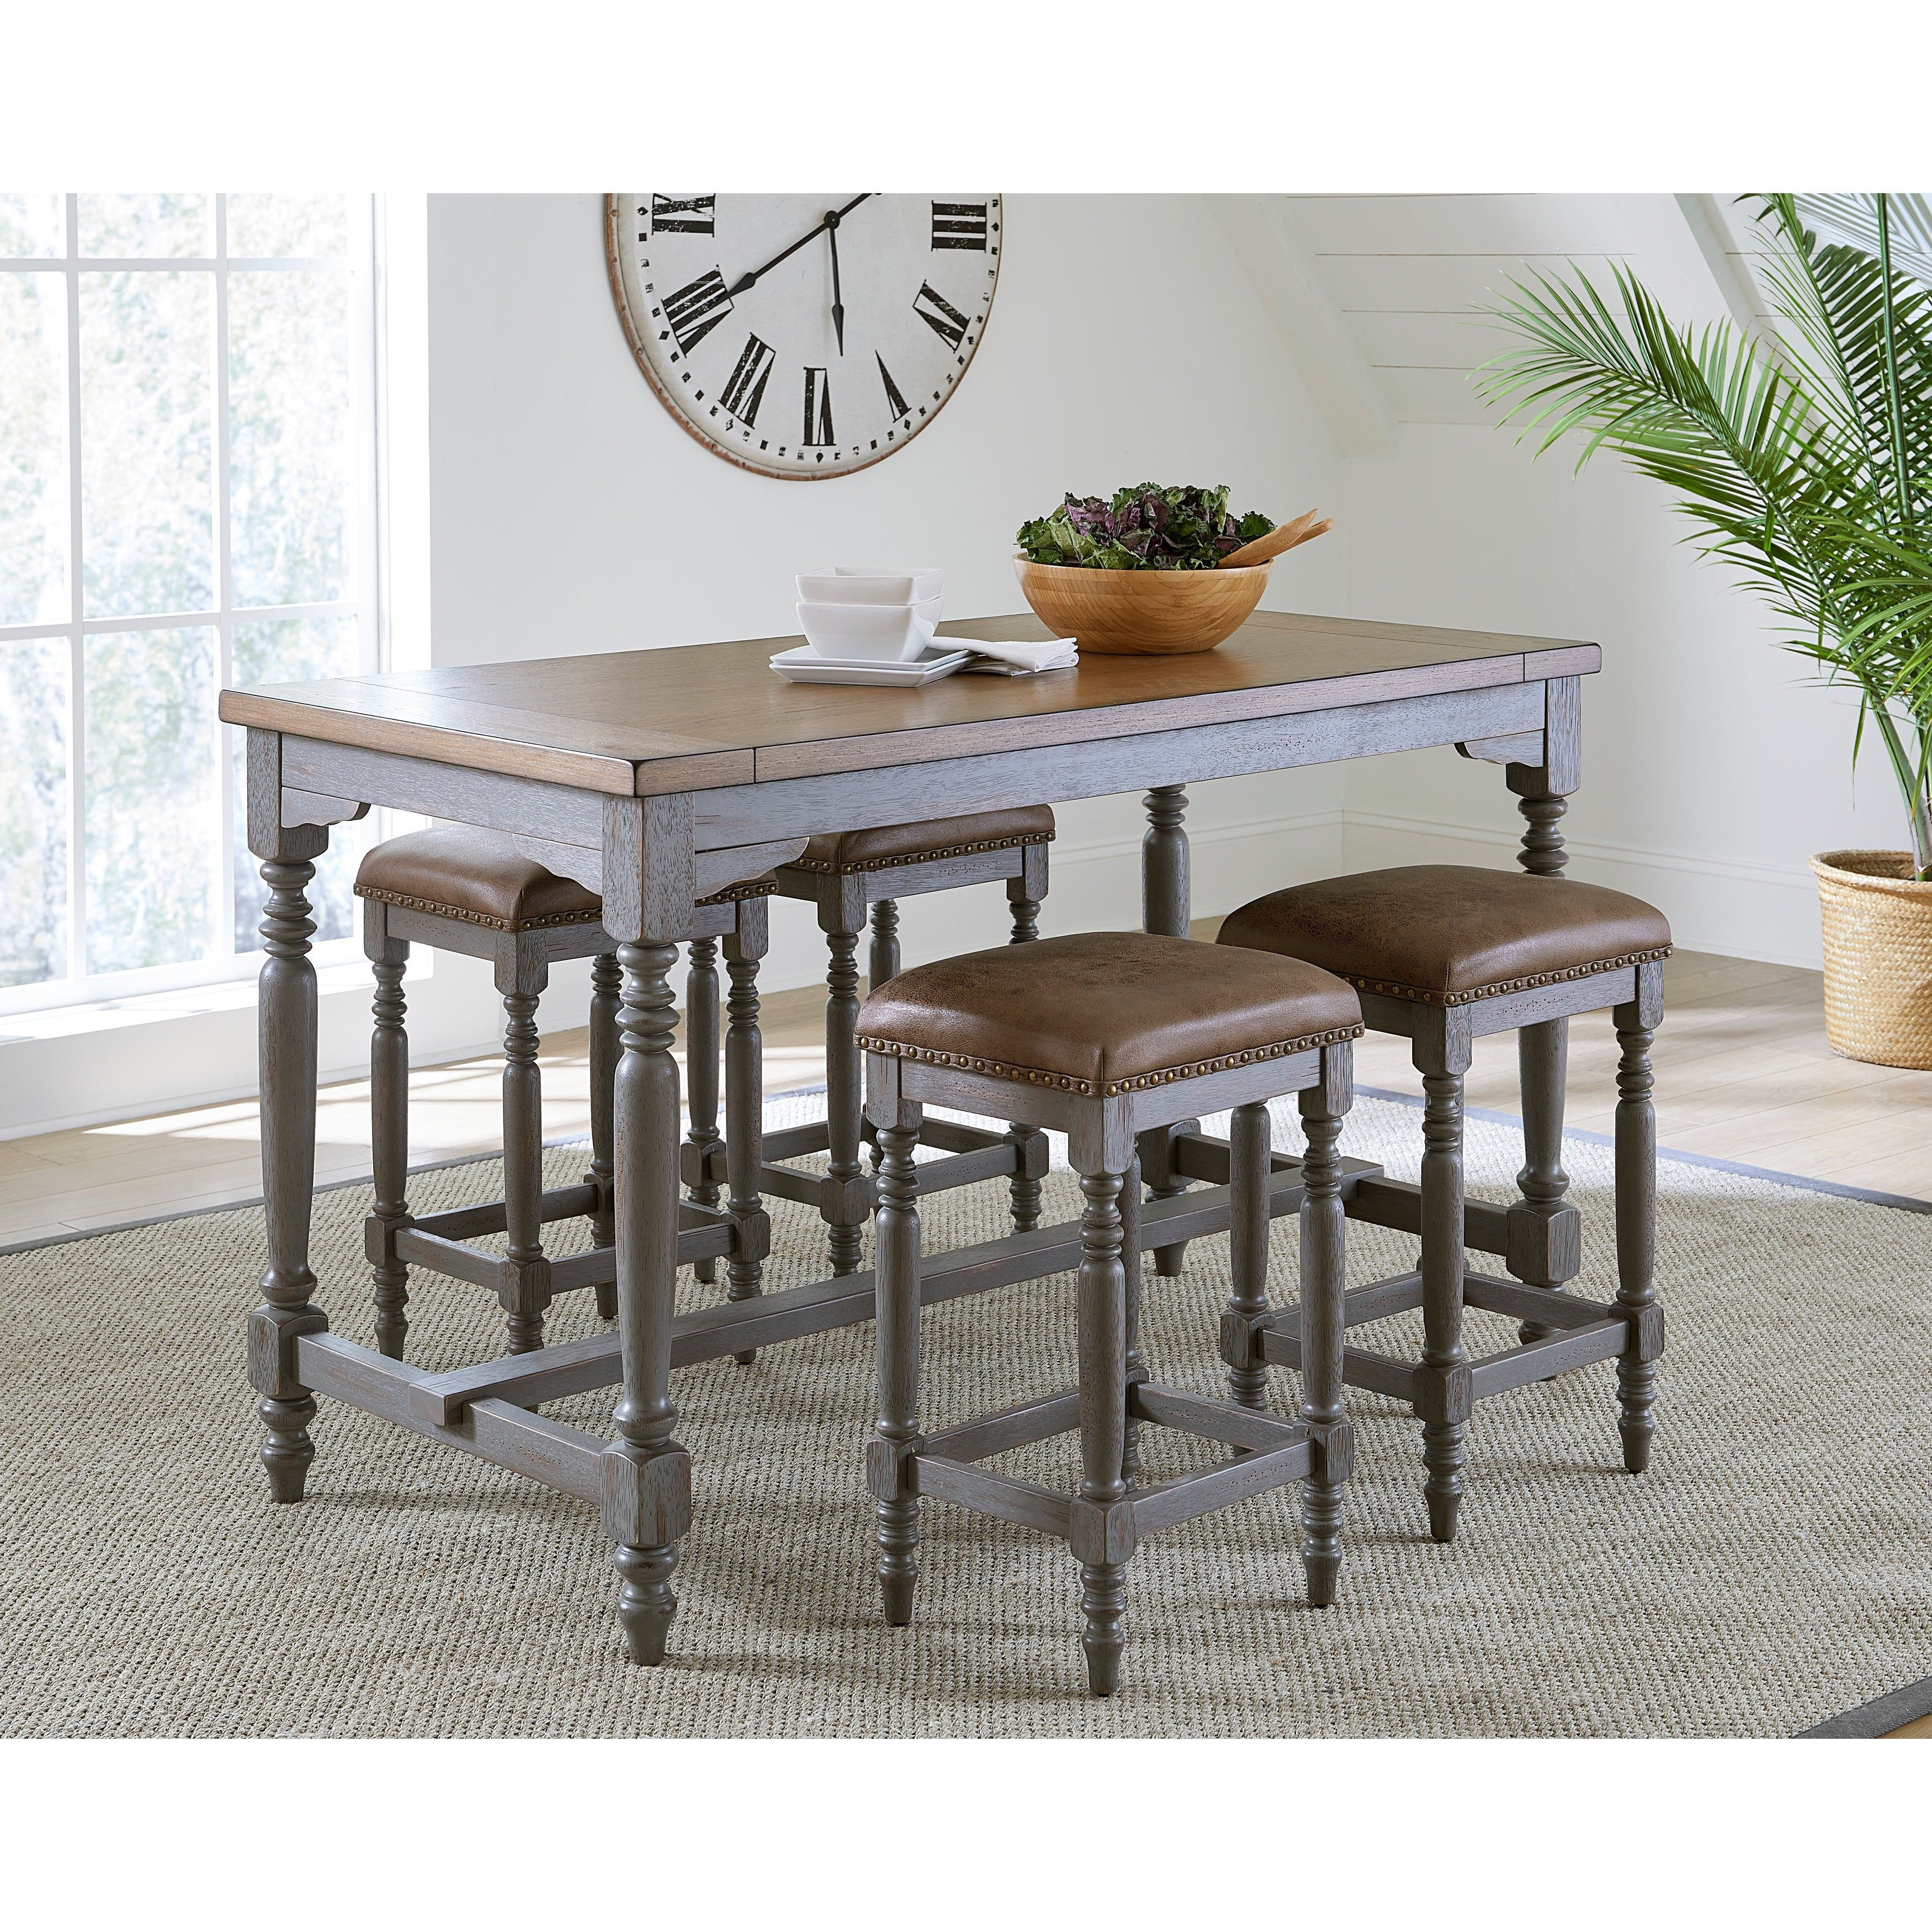 33++ Dining table stools set Top